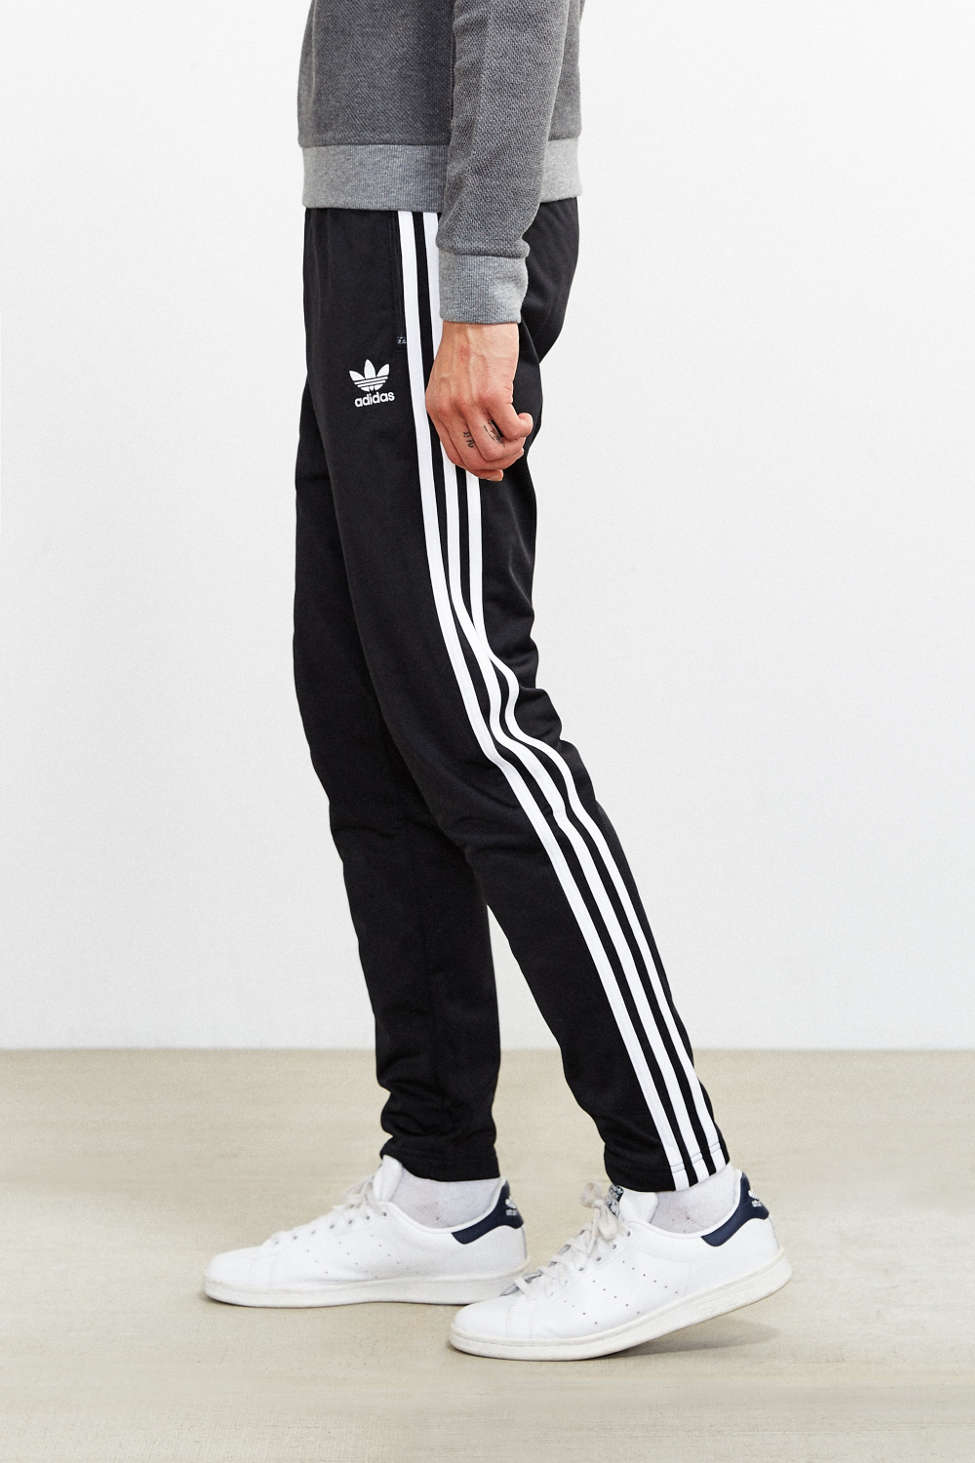 Adidas superstar open hem rintracciare le urban outfitters